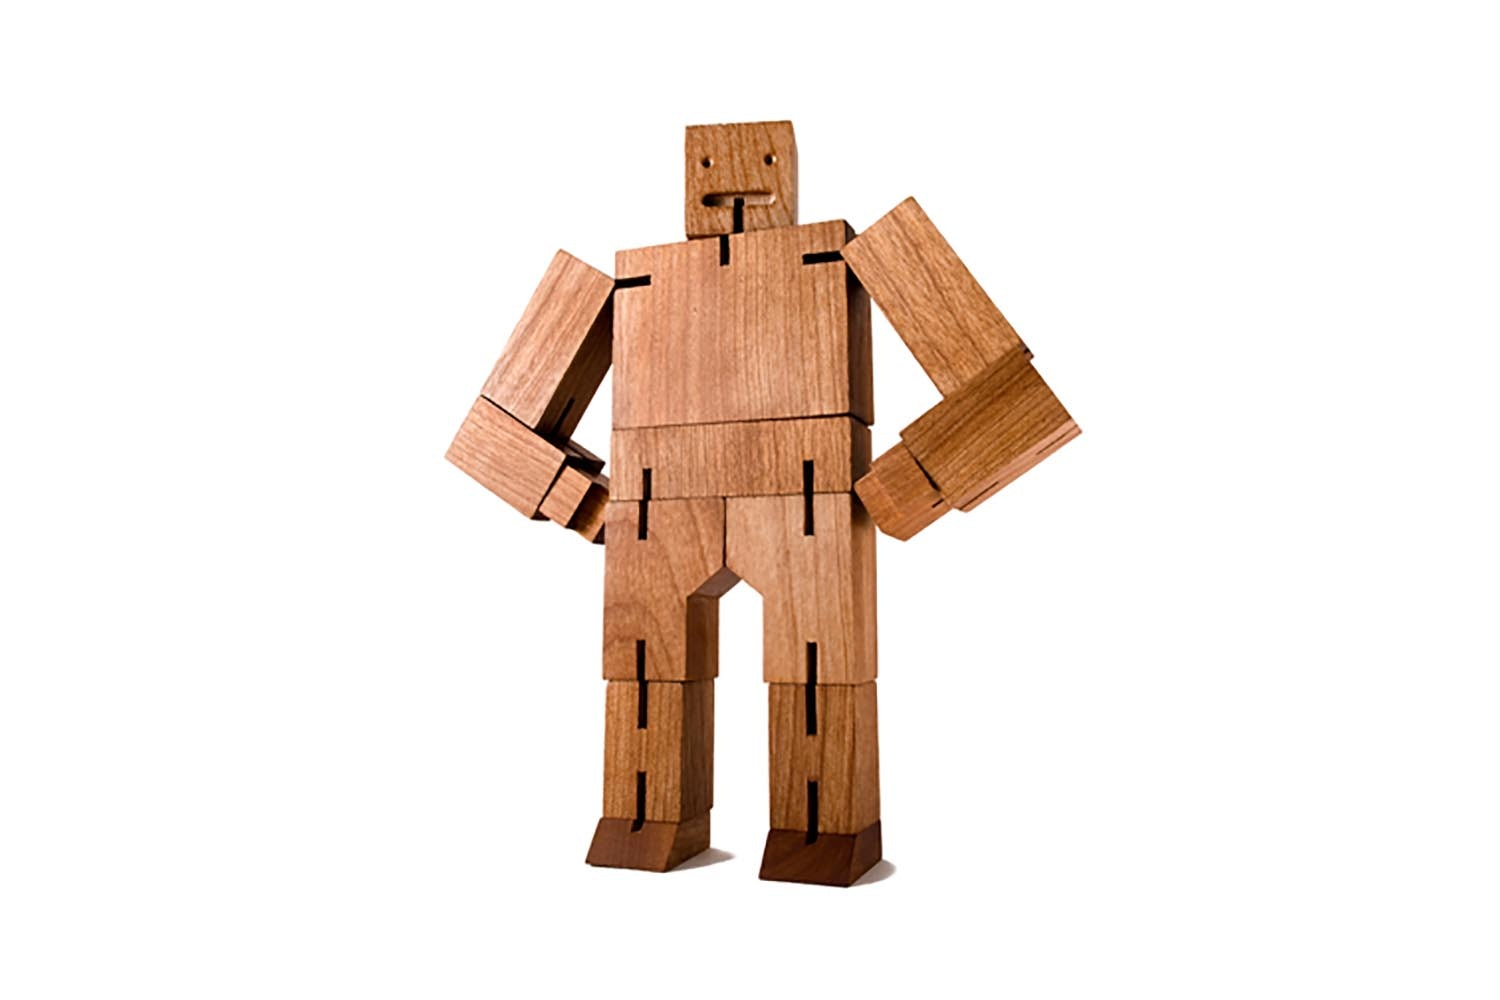 Cubebot Small - Natural by David Weeks for Areaware